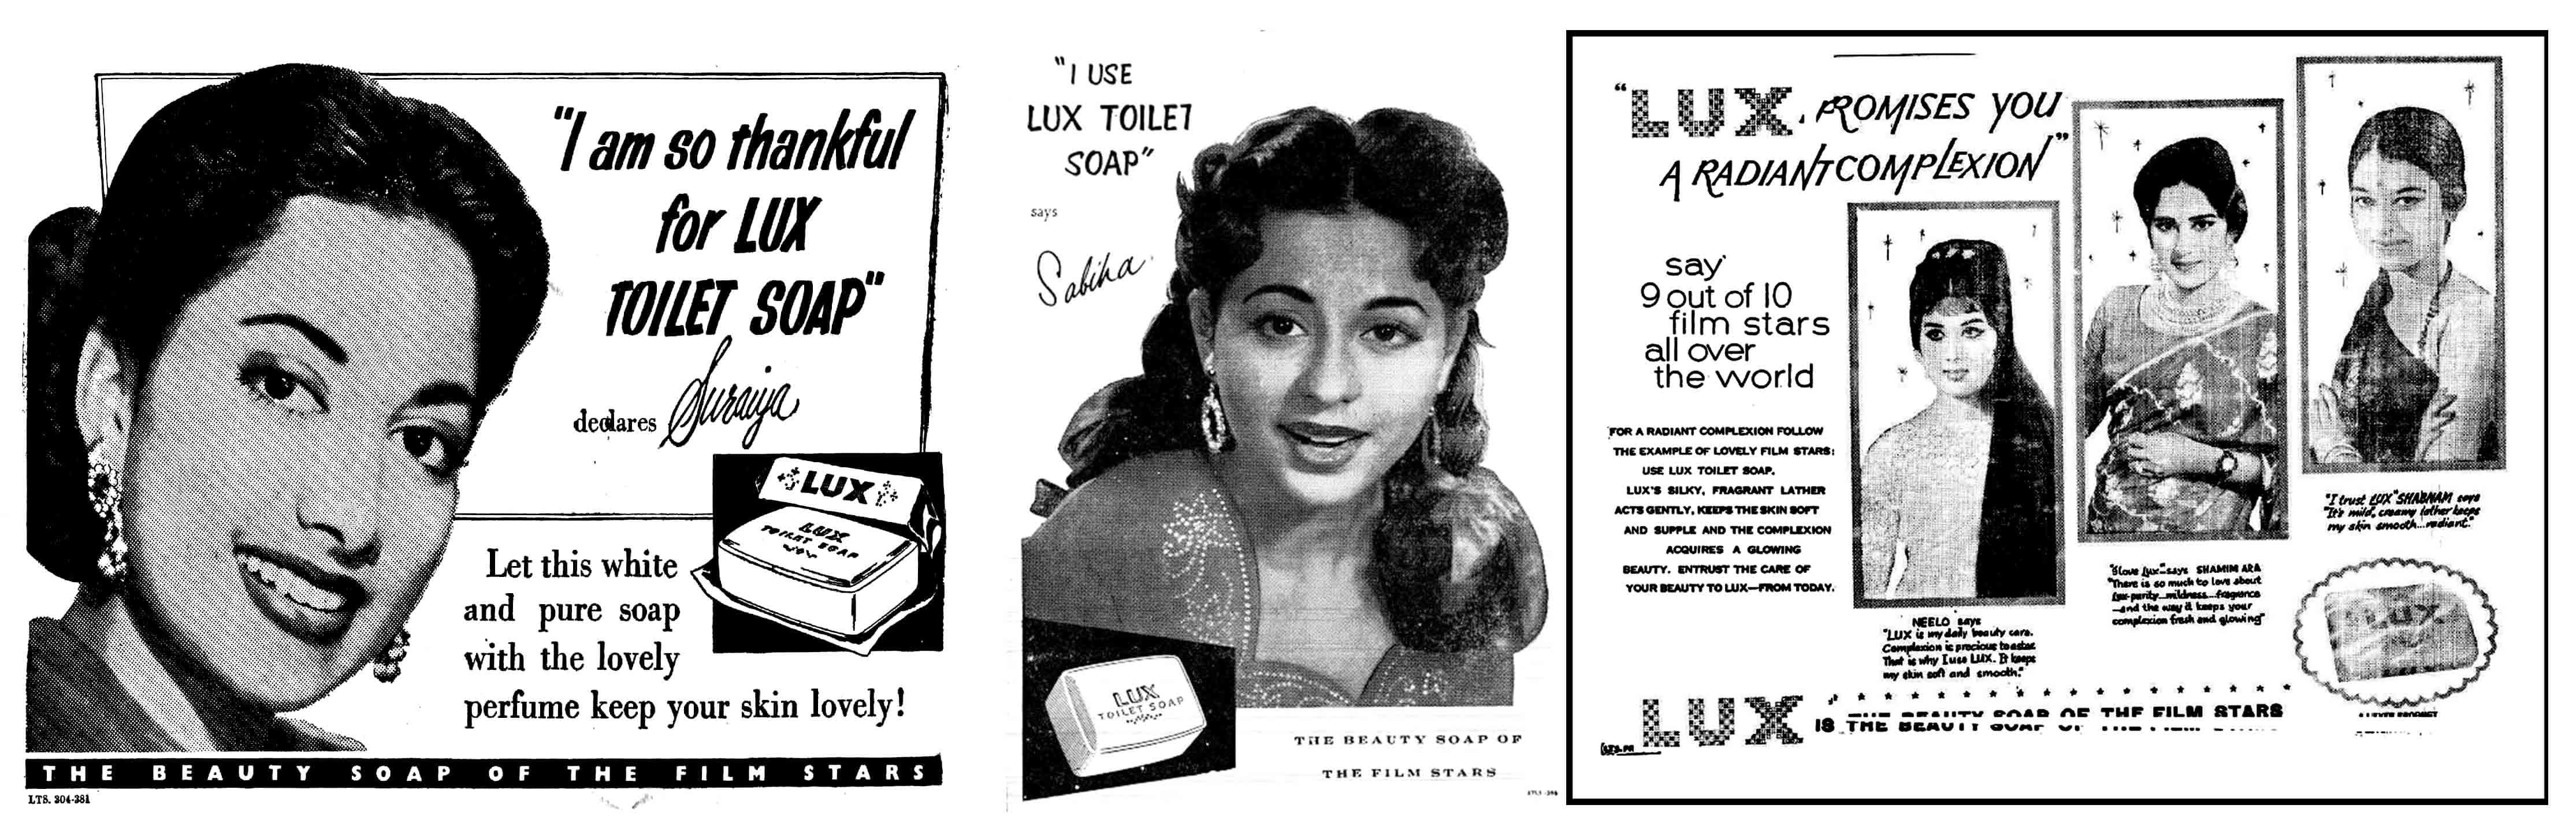 The Dawn Of Advertising In Pakistan 1947 2017 Long Range Fm Transmitter Circuit Hairstyles Lux Ads 1951 1956 And 1964